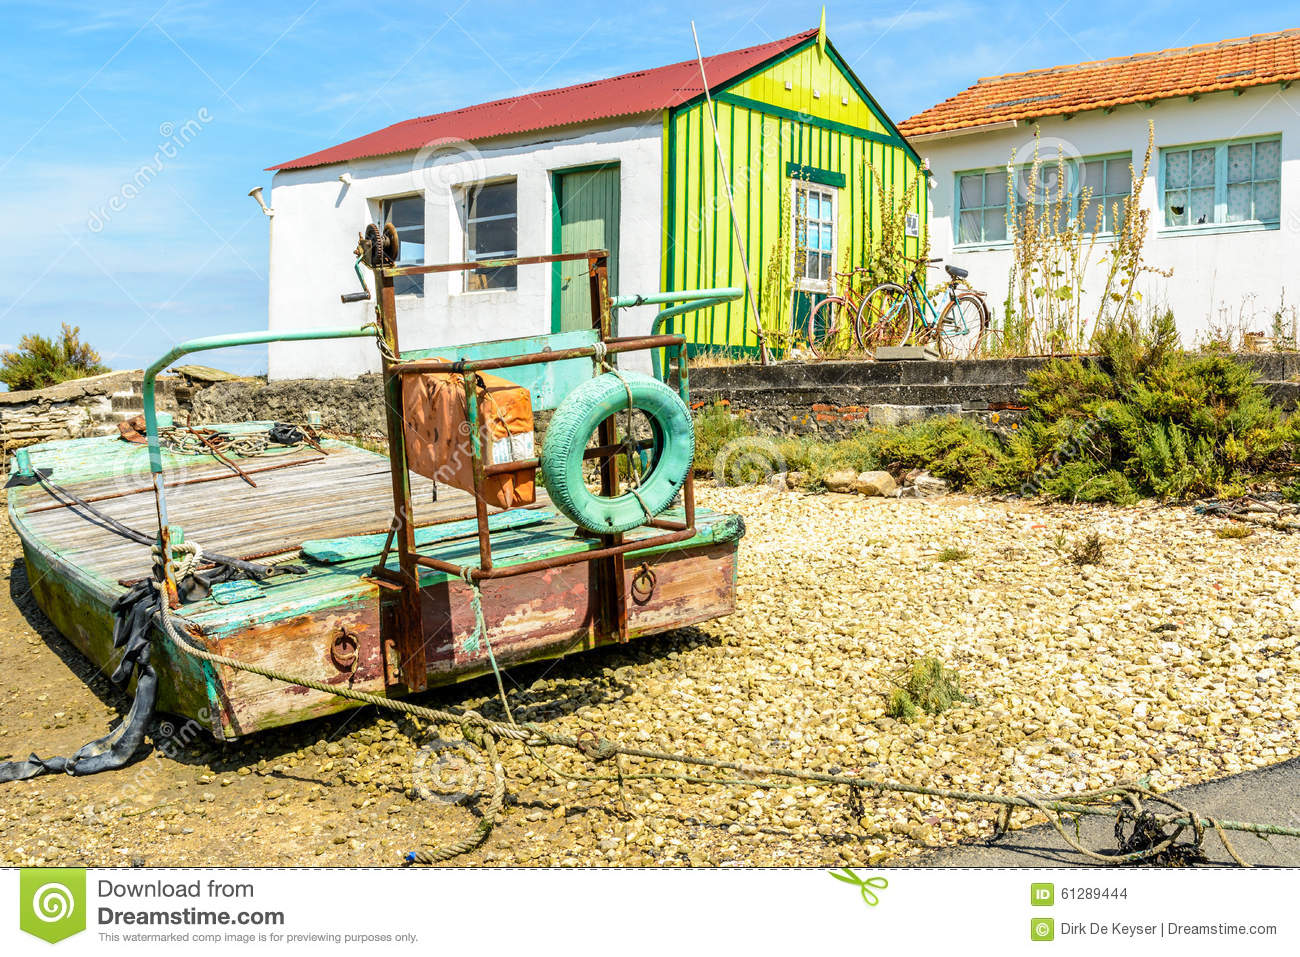 Oyster hut and boat on Oleron island, France